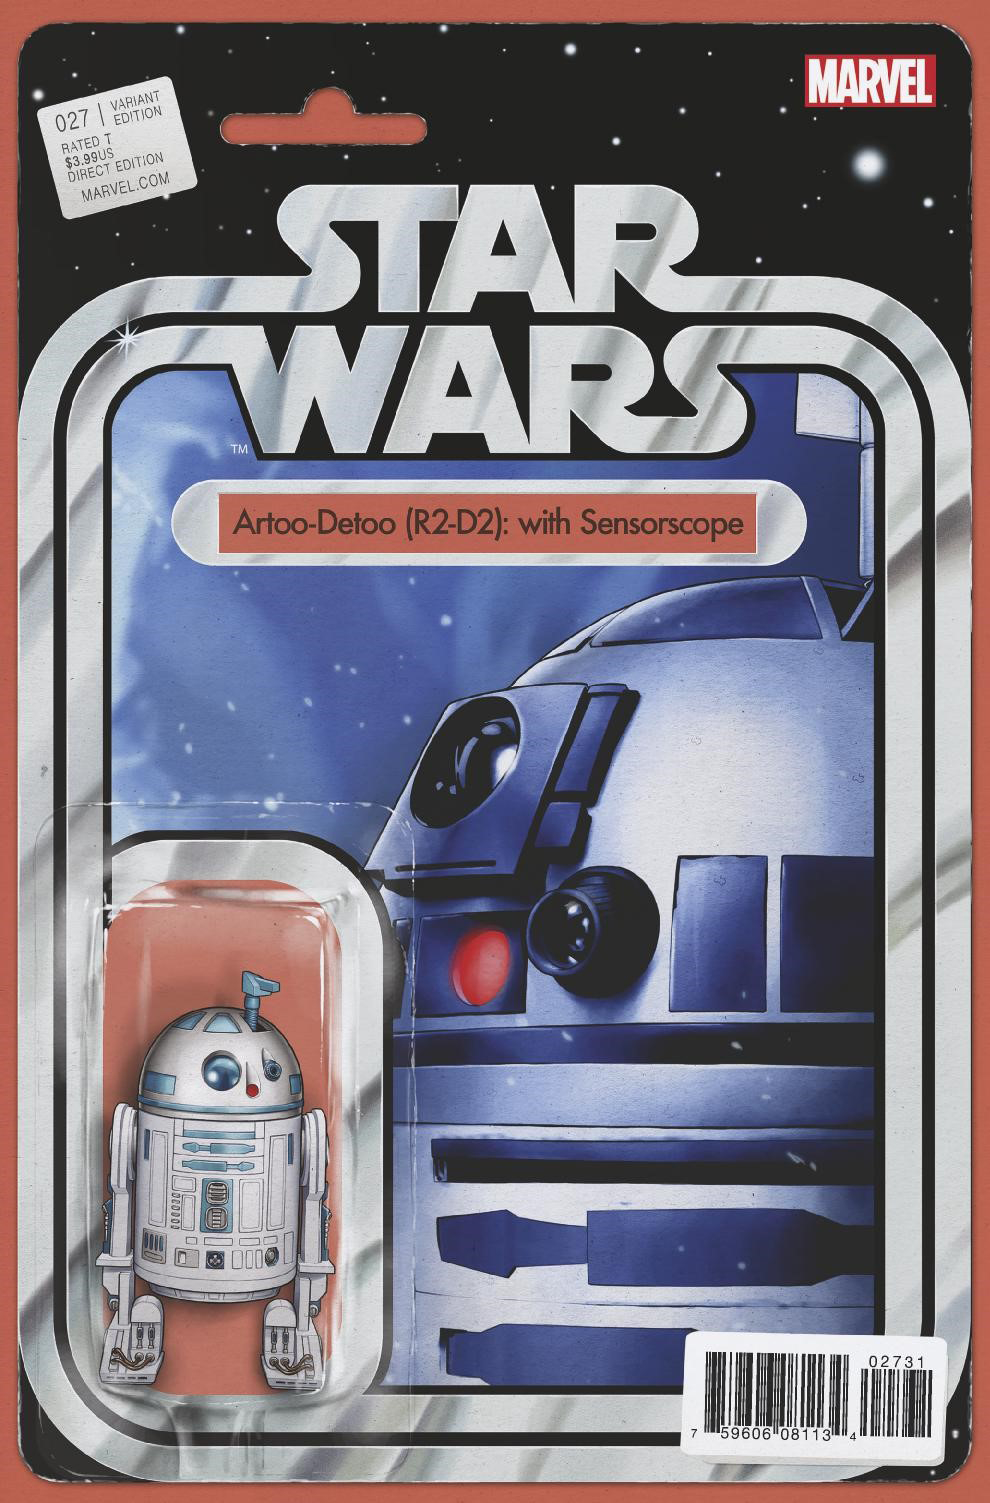 Star Wars #27 (Action Figure Variant Cover) (25.01.2017)